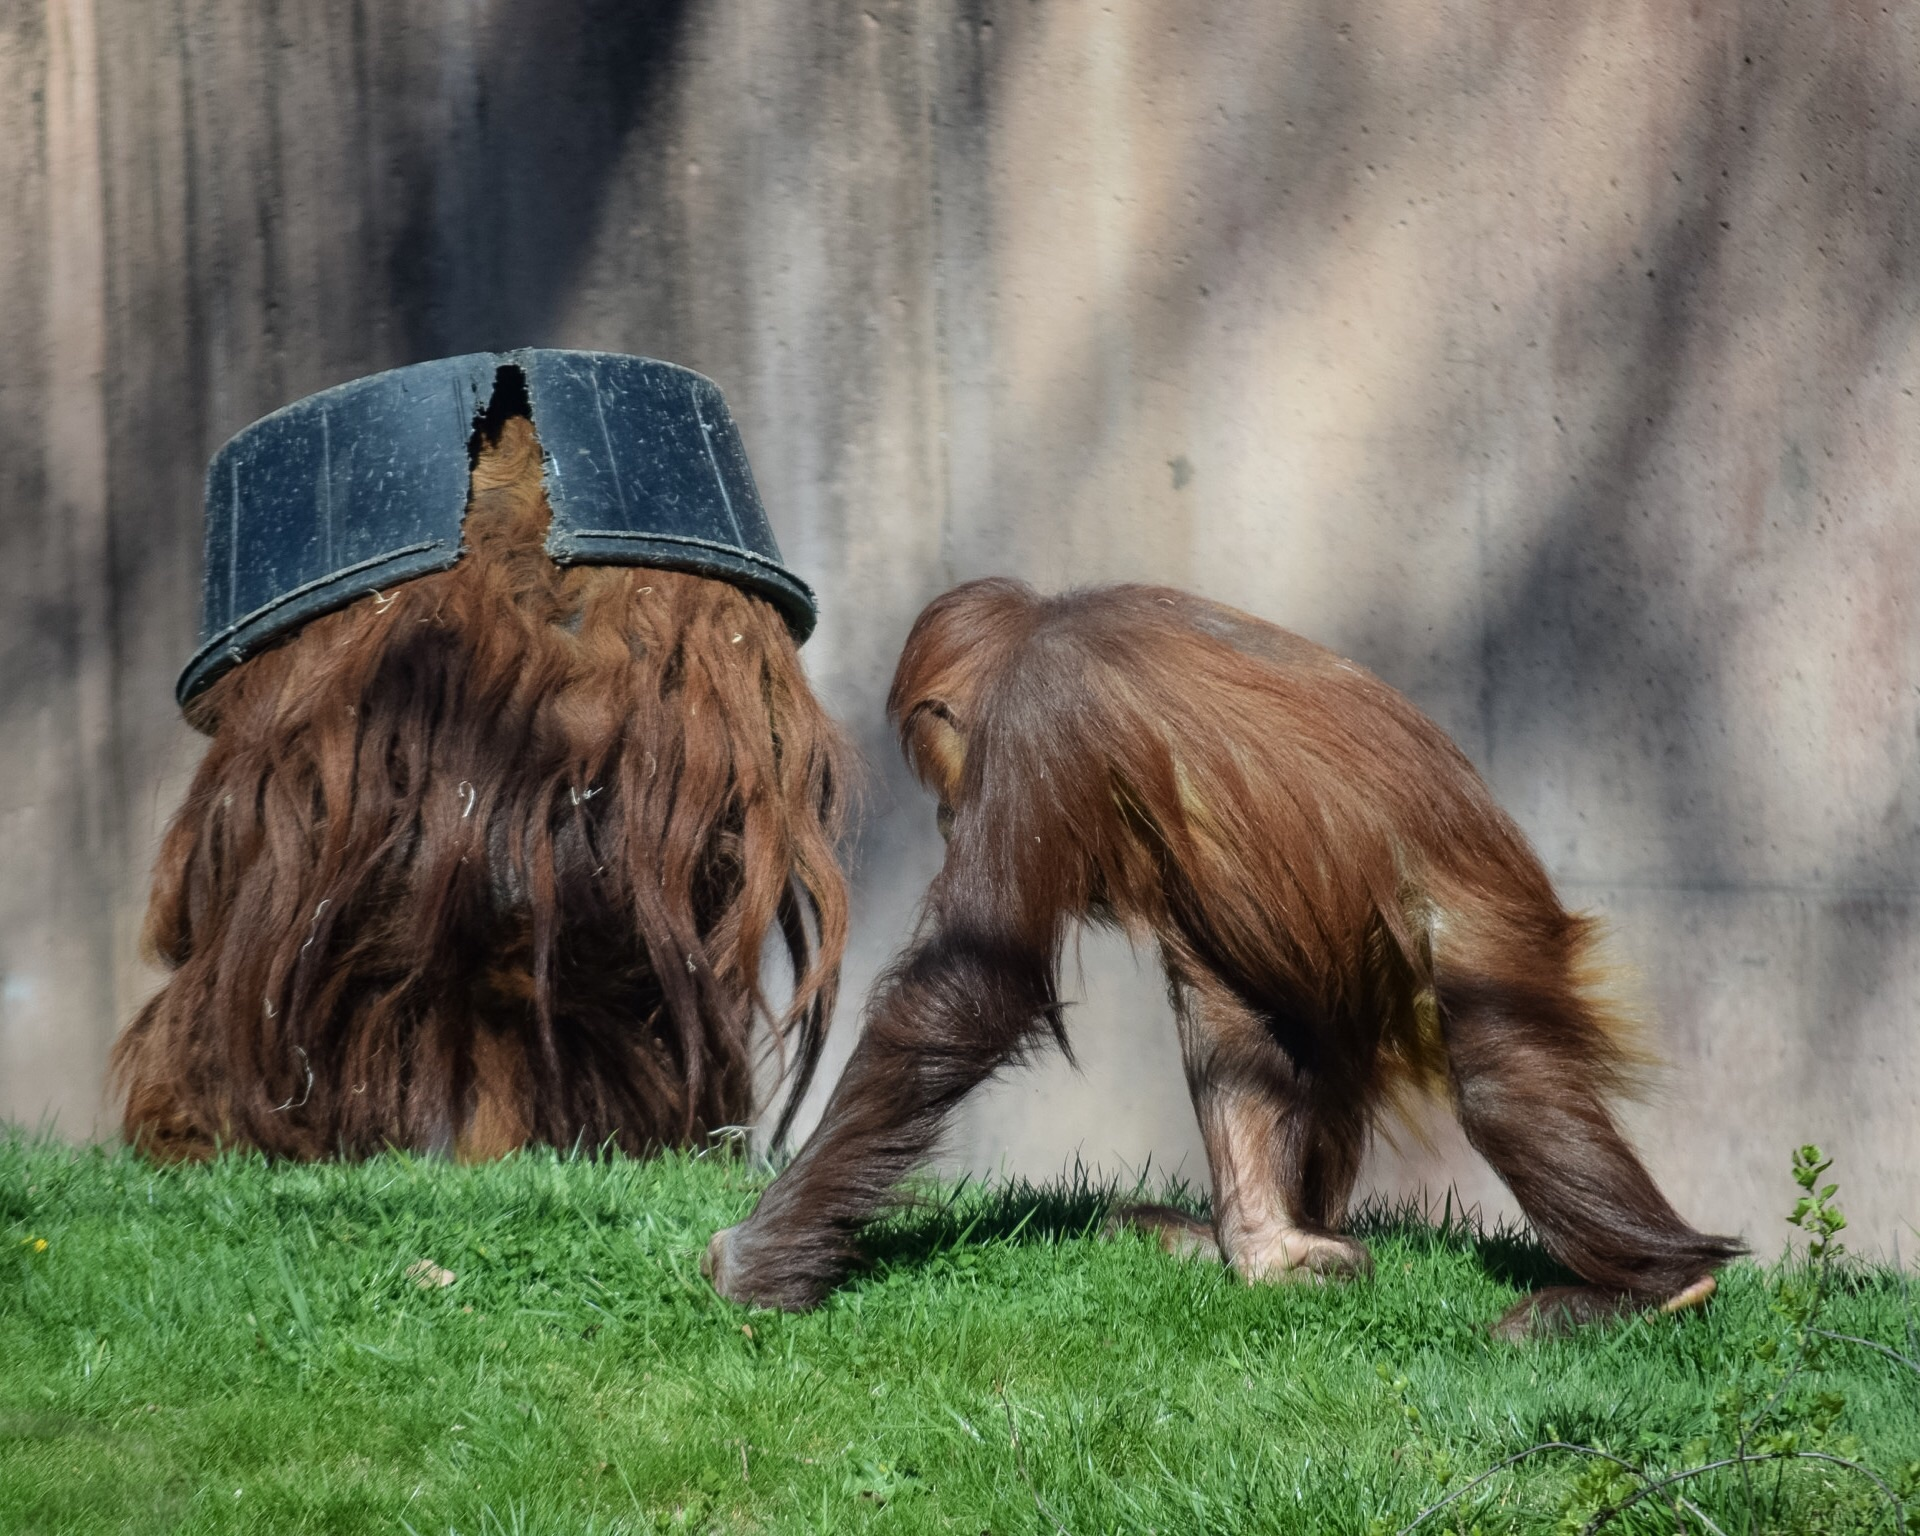 Orangutans play at the zoo. Less than 6,600 remain in the wild.